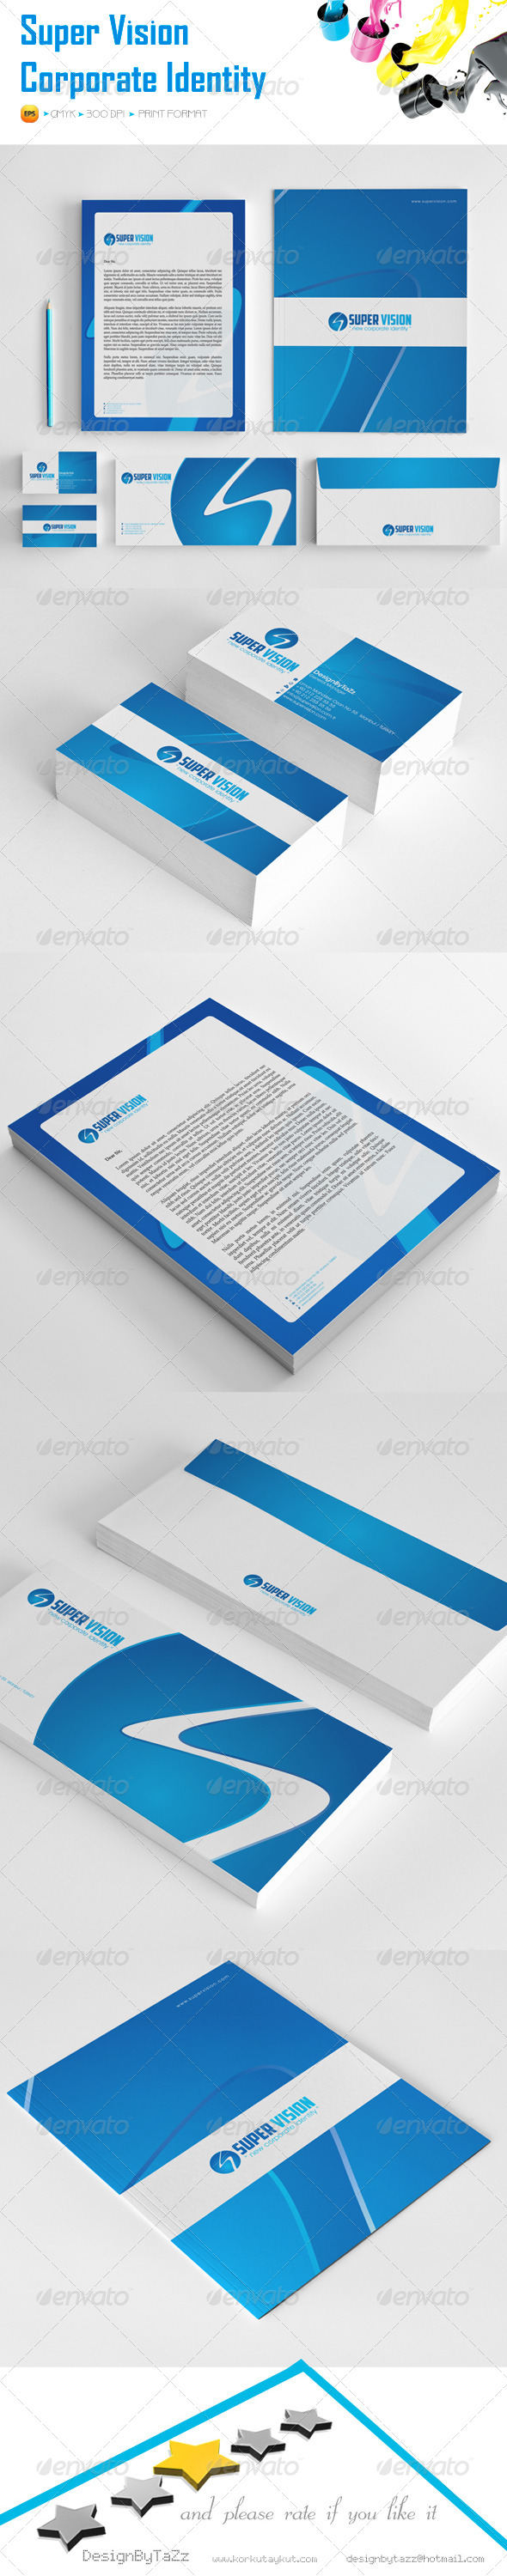 GraphicRiver Super Vision Corporate Identity Package 5545198